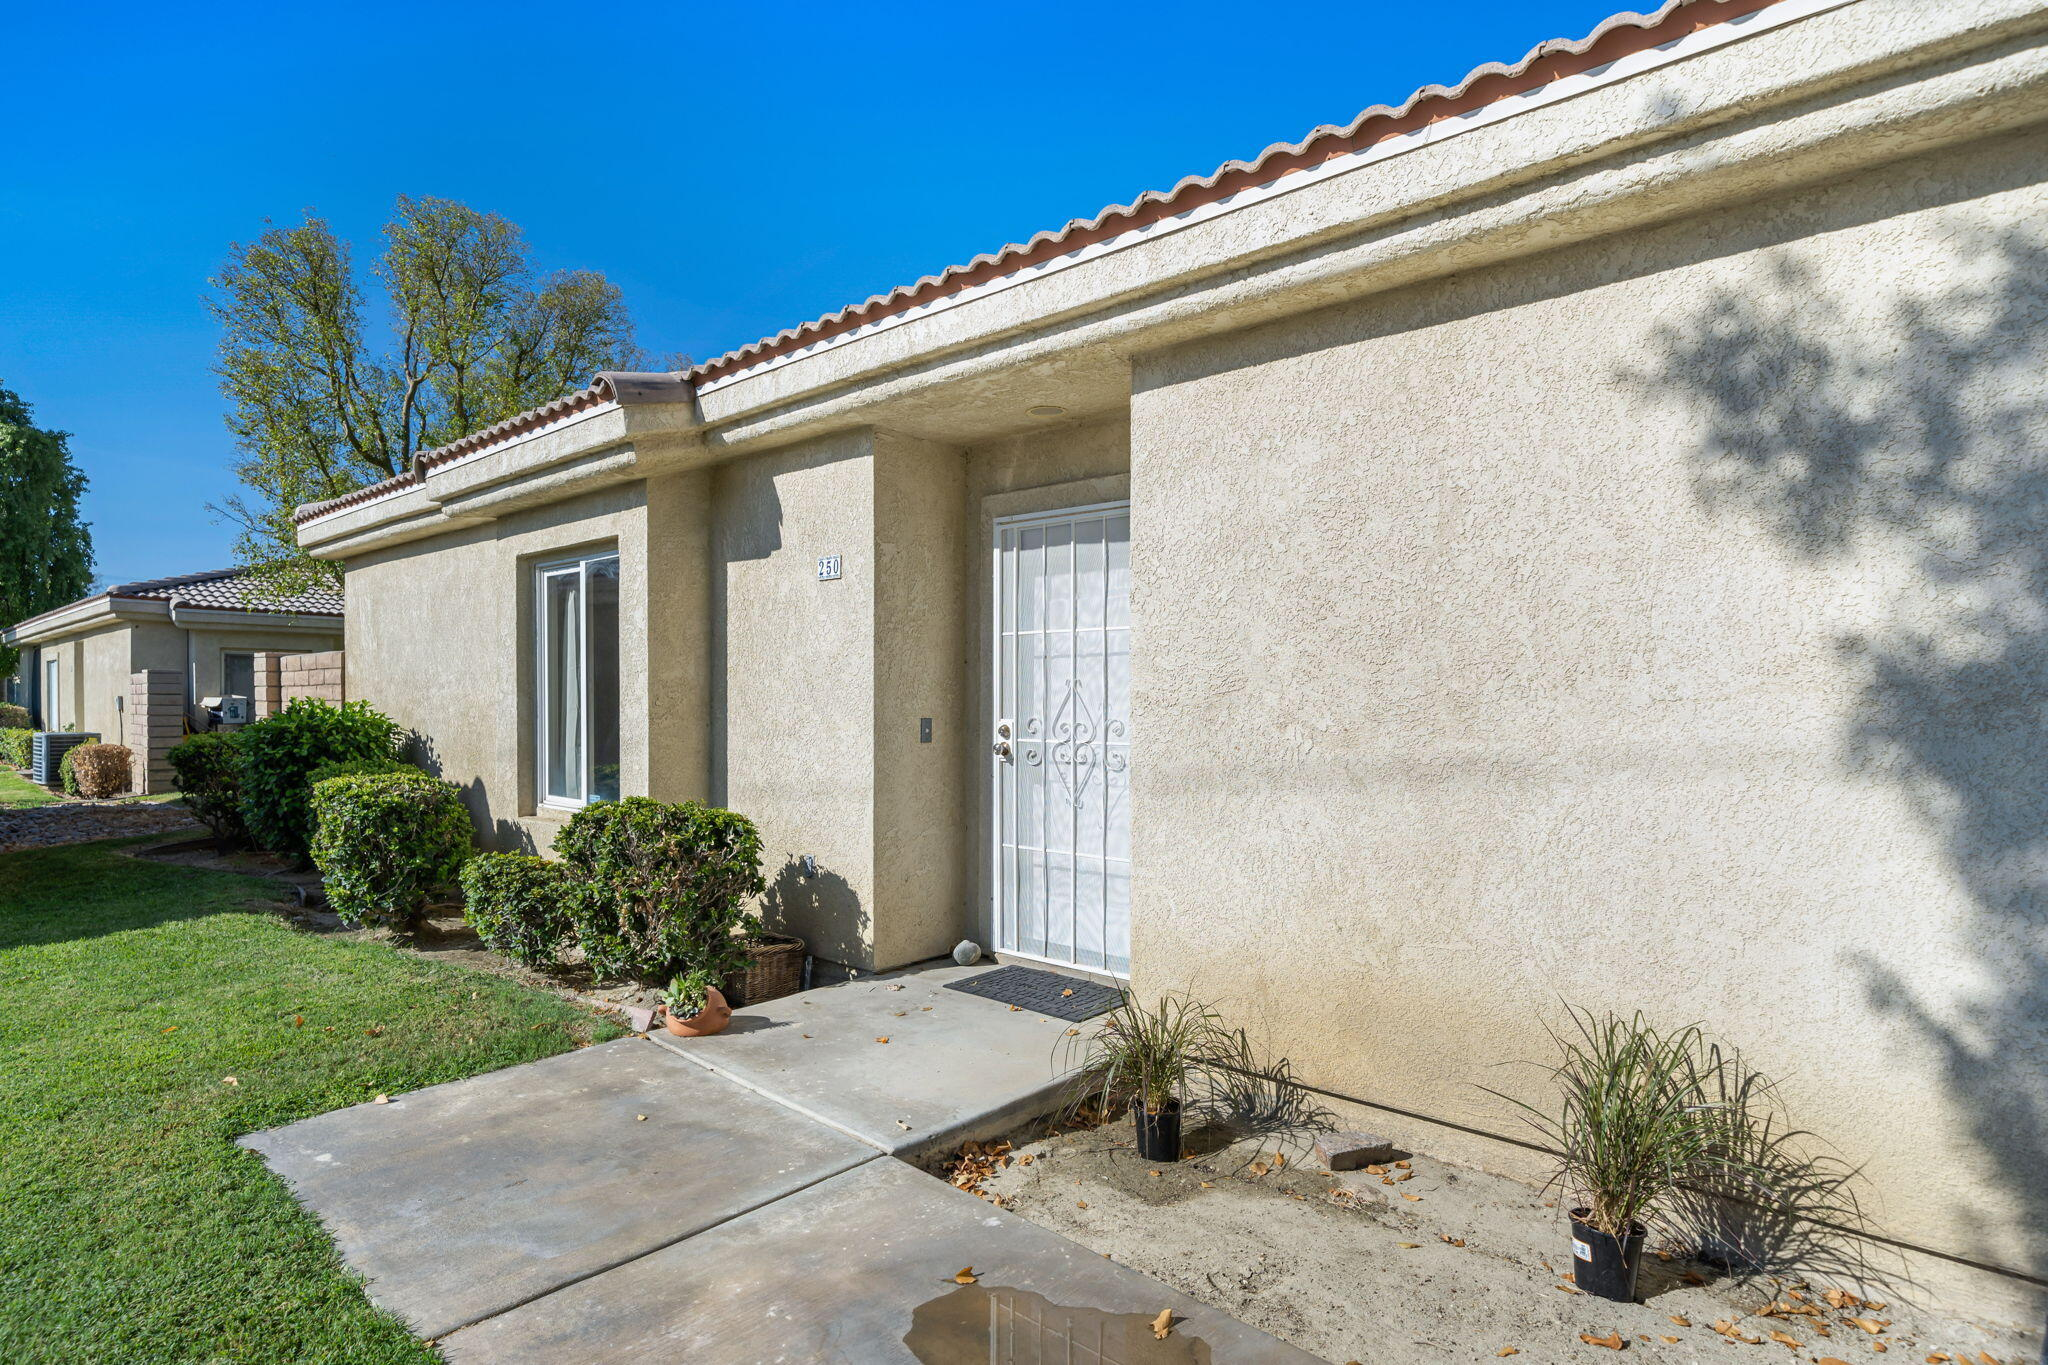 Recently updated, this bright and cozy open floor plan condo would make for the perfect home, investment, or Desert getaway. This home has been well- kept and boasts 2 bedrooms, 2baths, and a Den/Office space that is currently being used as a 3rd bedroom. Upgraded features include: granite kitchen countertops, new cabinets, new tile floor in the living room, kitchen, dining room, and bathrooms, remodeled primary bathroom, oversized barn doors and fresh paint throughout. Enjoy dinner or relax outside on your private patio located just off the primary bedroom. This condo includes its own one car detached garage. The HOA  includes water and trash and provides 3 pools, 3 tennis courts, a basketball court, and a Clubhouse. SummerBreeze is within close proximity to JFK Hospital, schools, shopping, golf, and Coachella and Stagecoach Music Festival Venue.